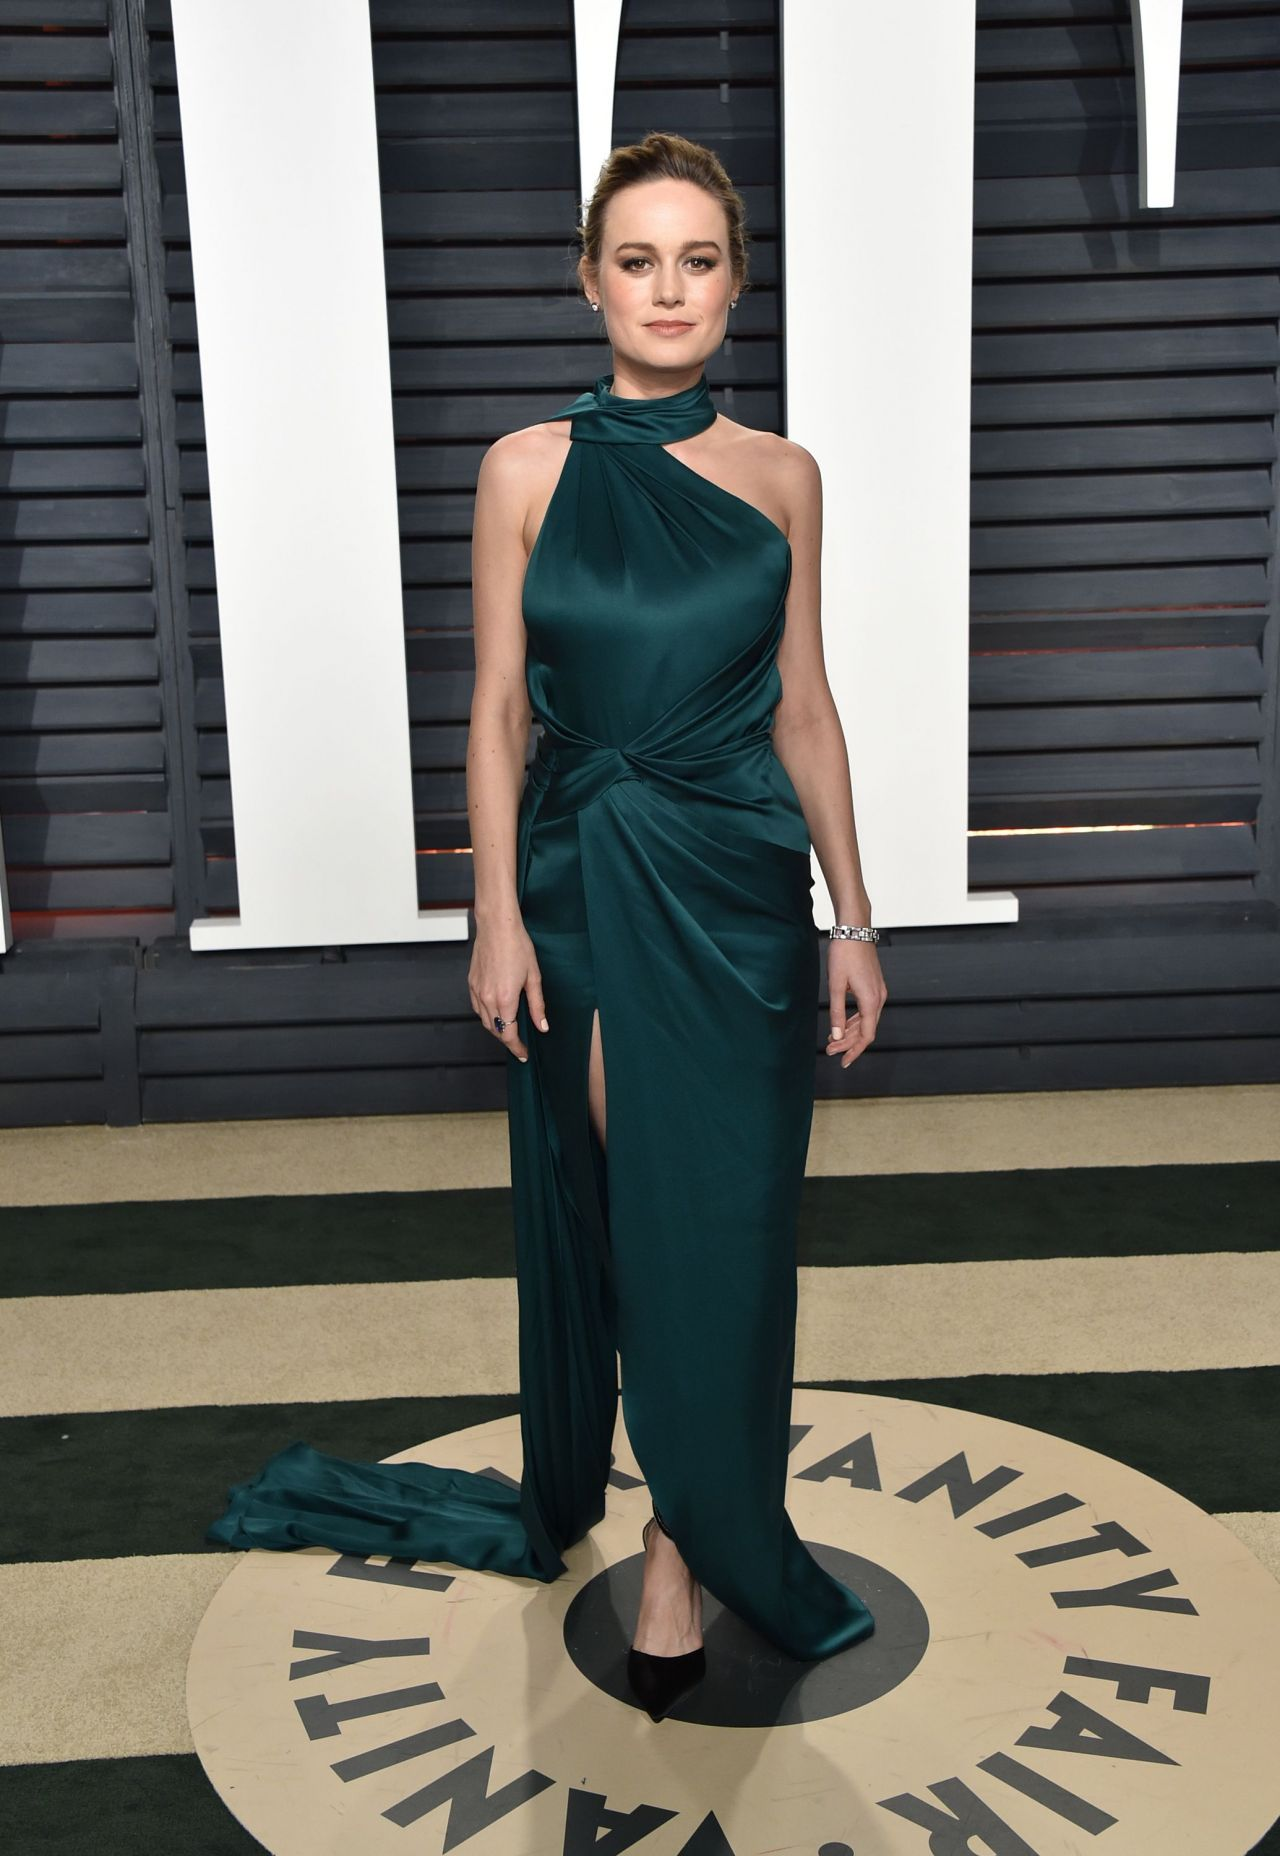 Brie Larson at Vanity Fair Oscar 2017 Party in Los Angeles